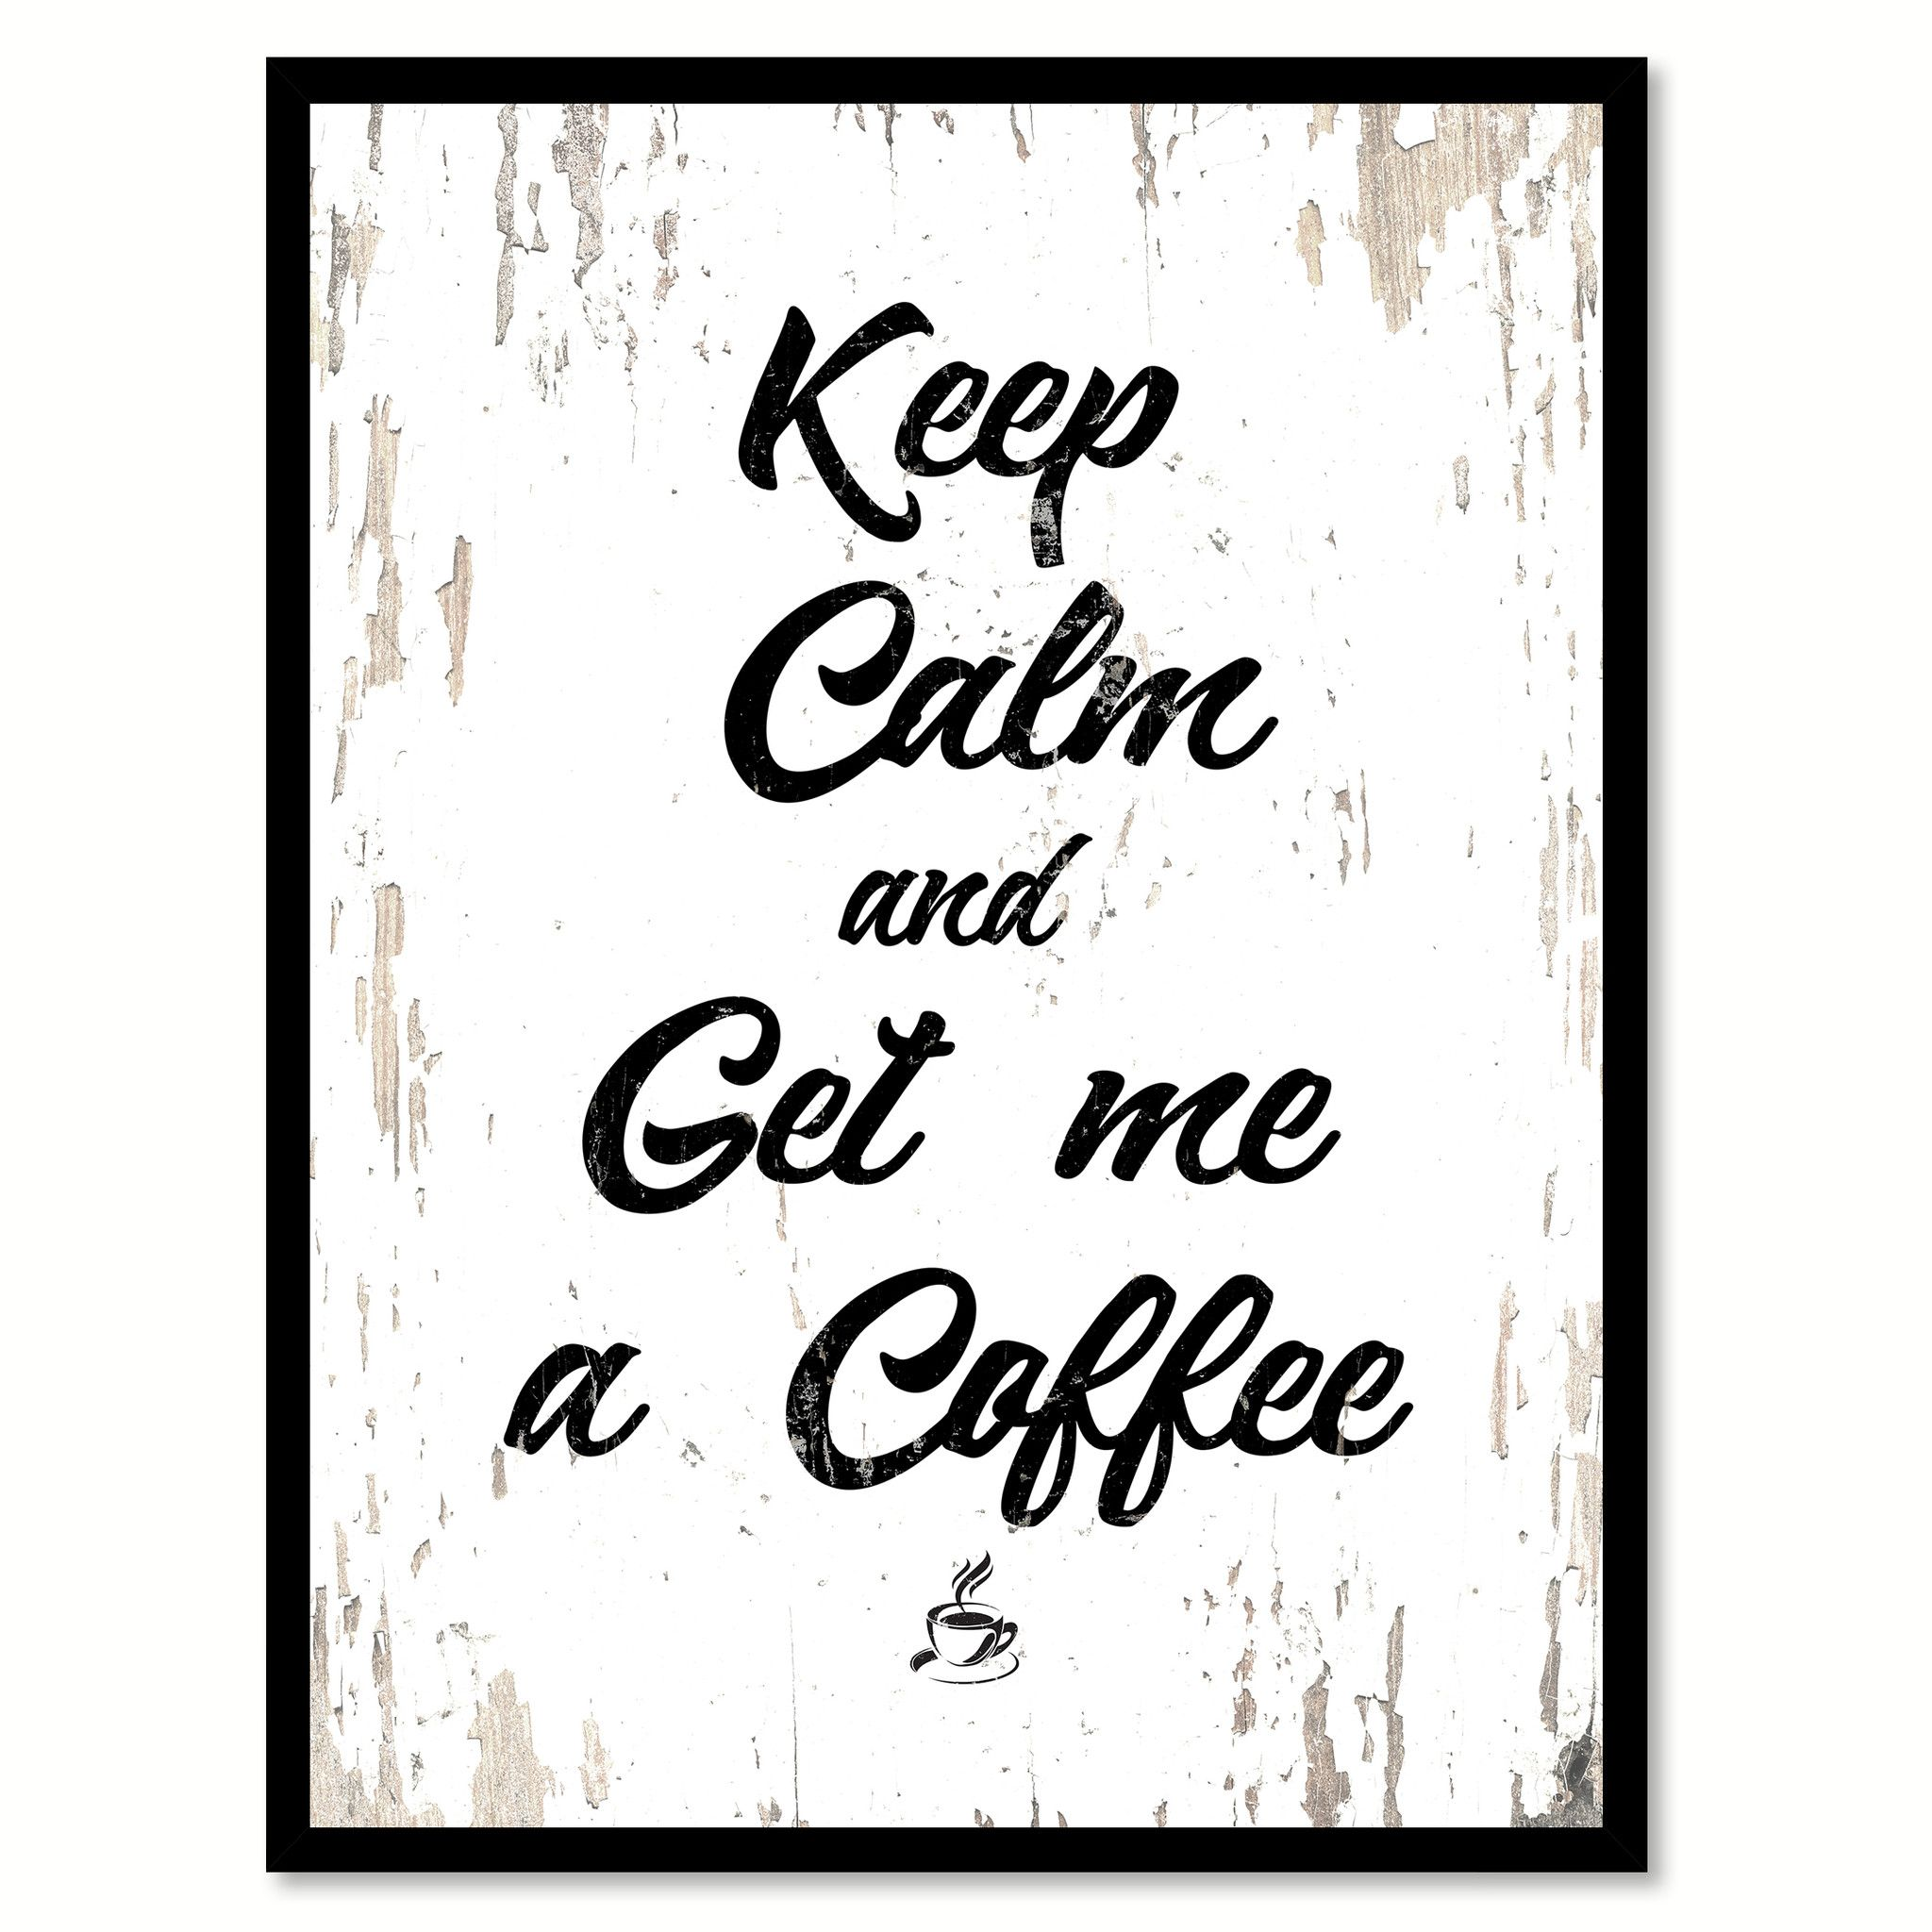 Keep Calm Get Me A Coffee Quote Saying Canvas Print with Picture